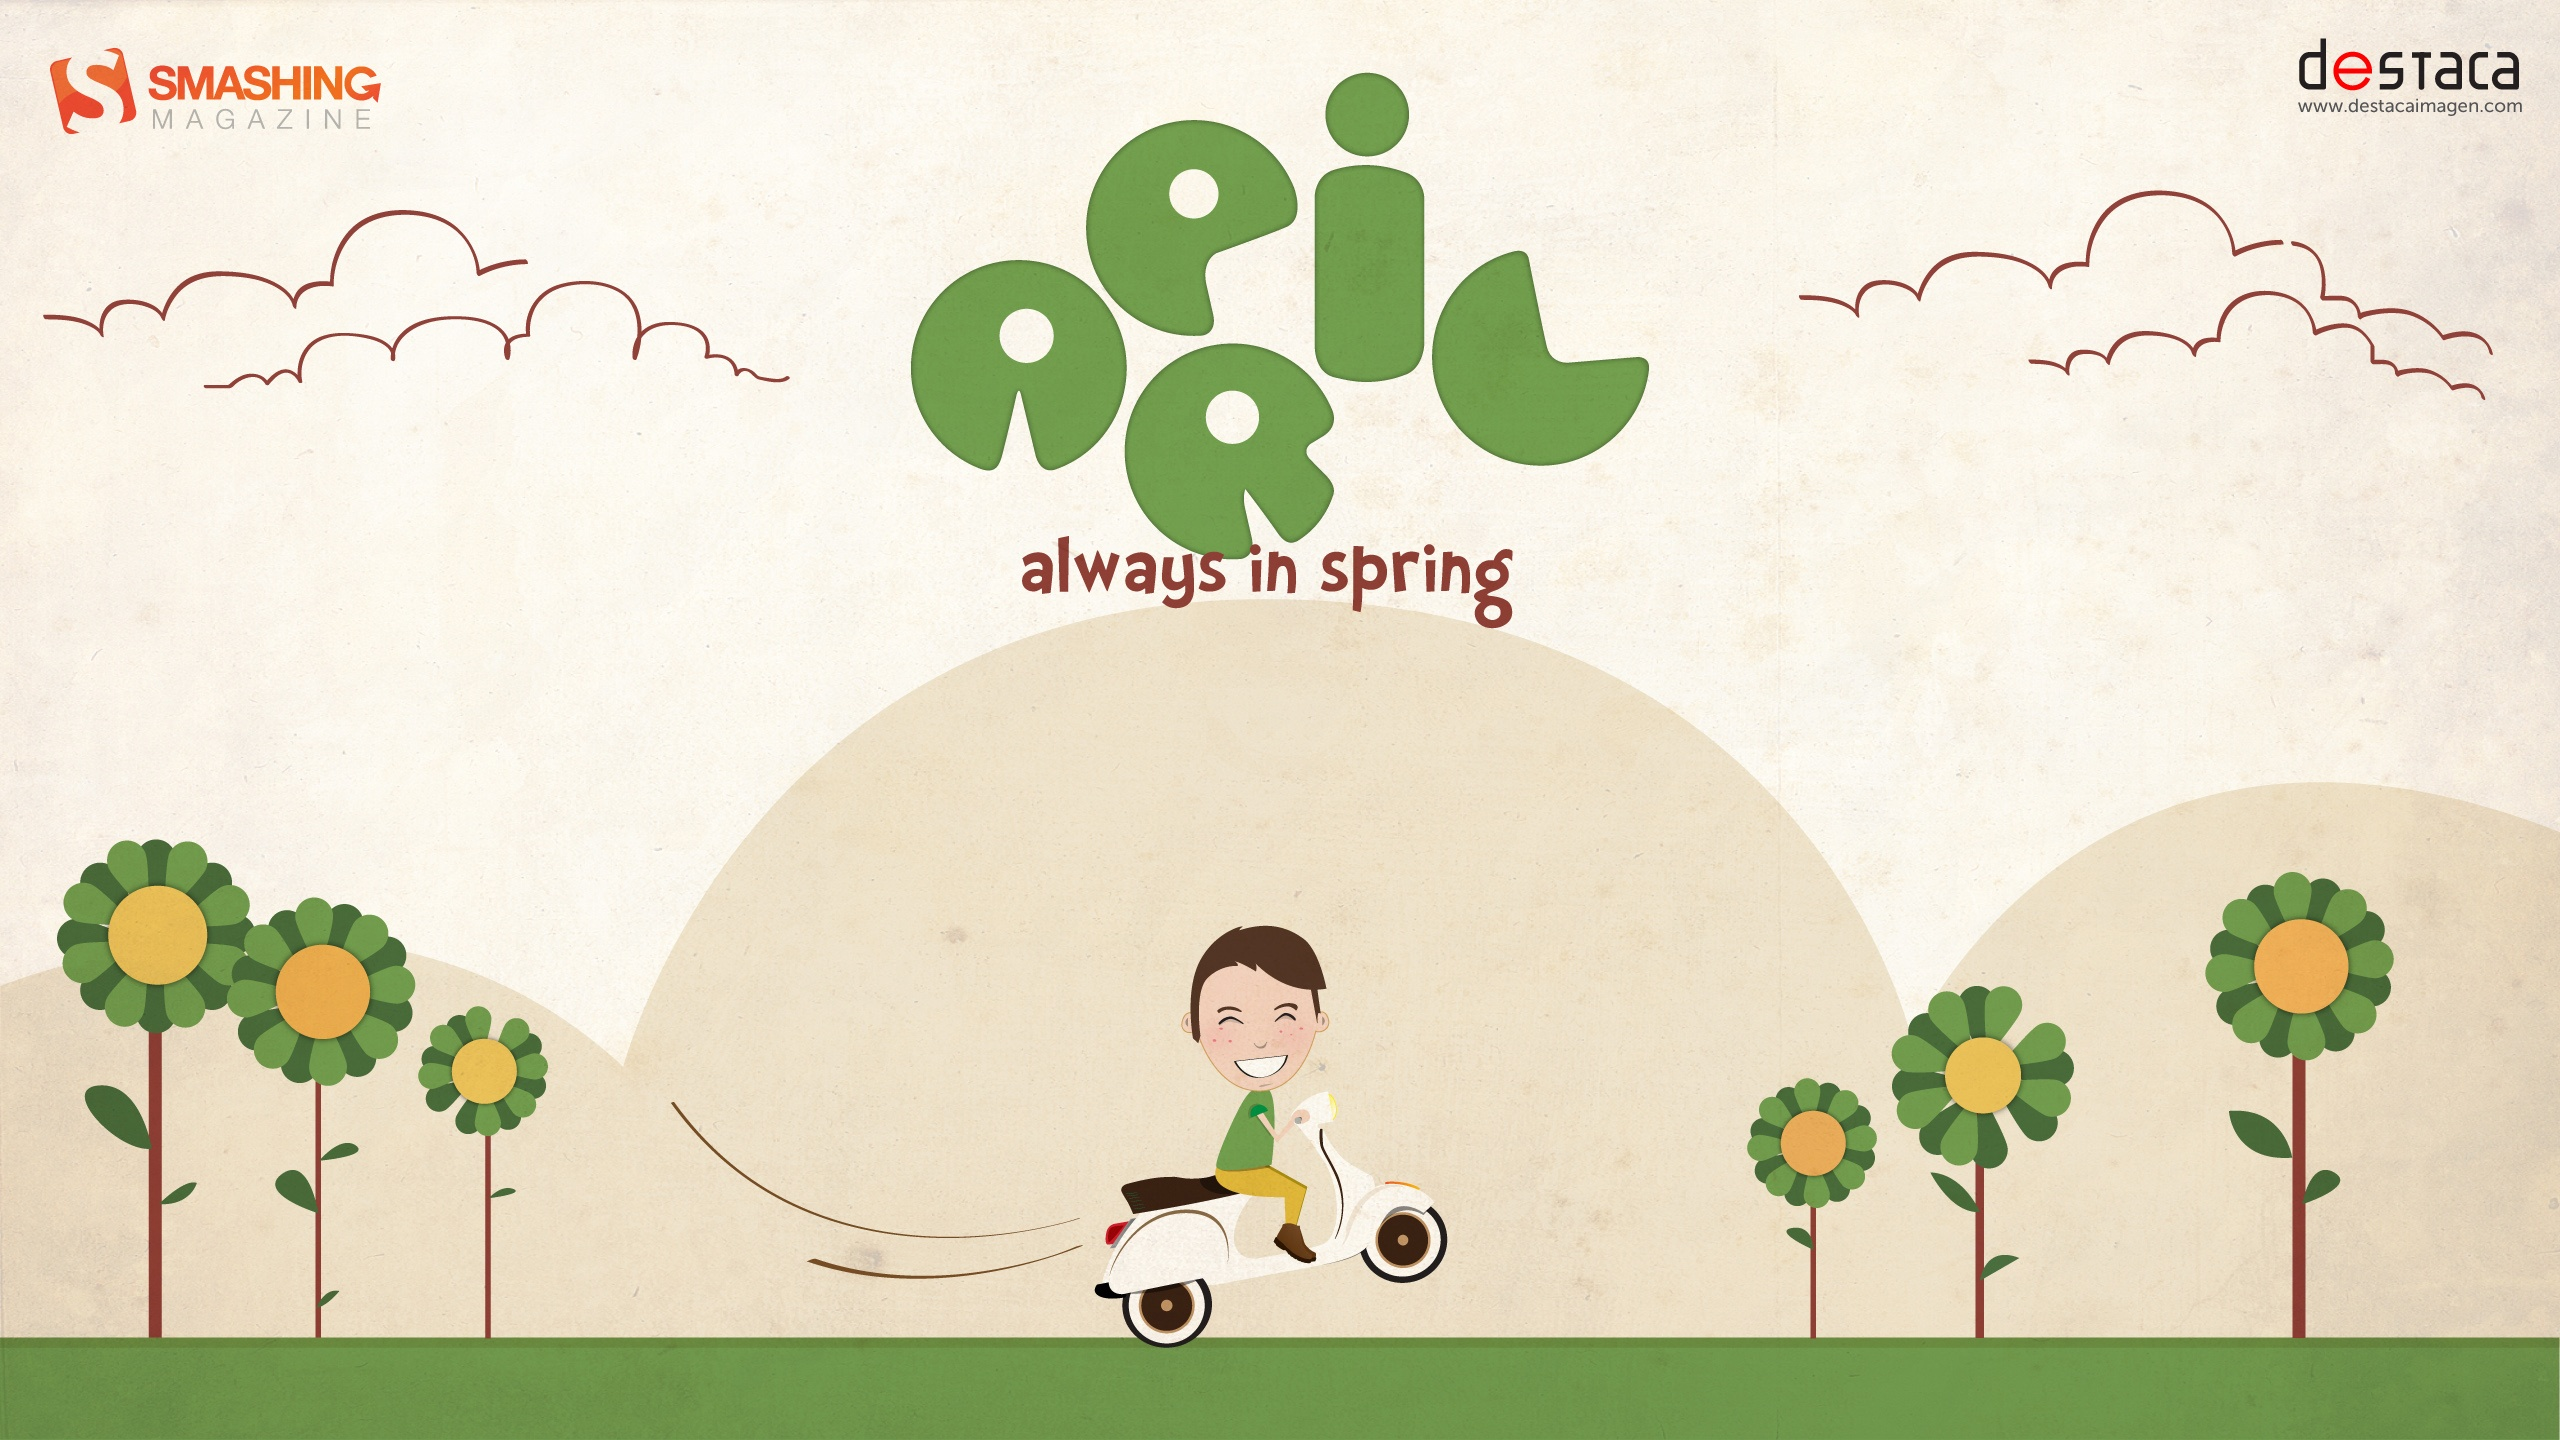 always spring destiel wallpaper - photo #11